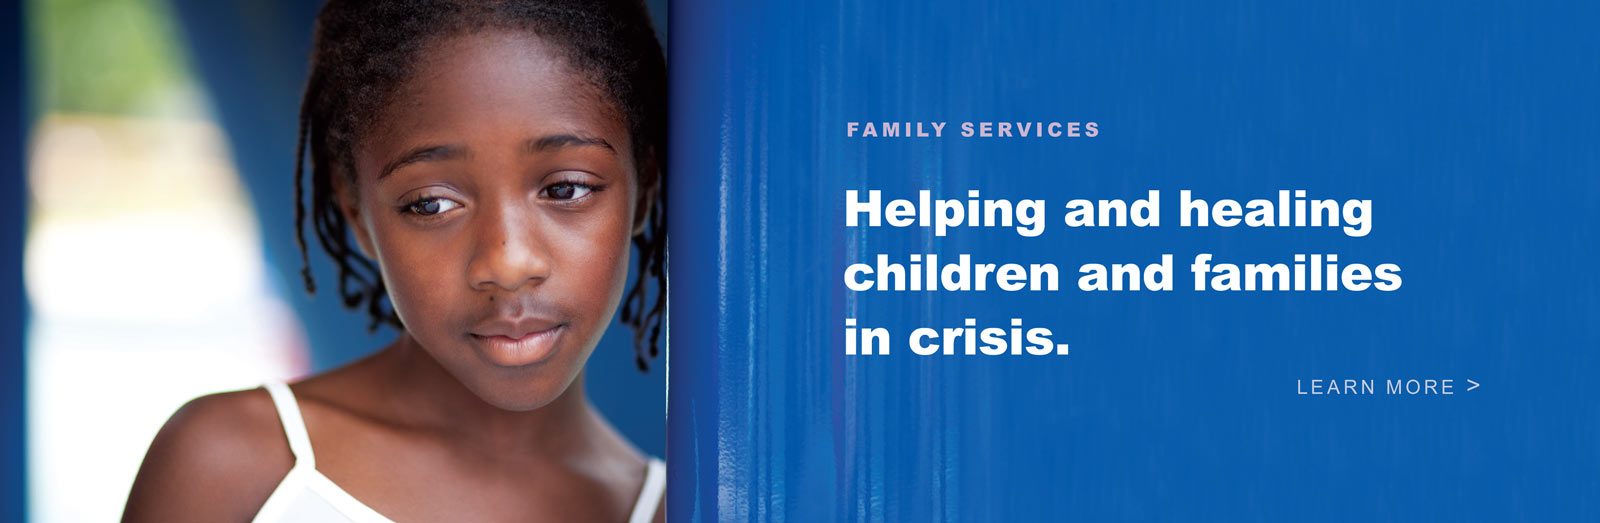 Family Services - Helping and healing children and families in crisis